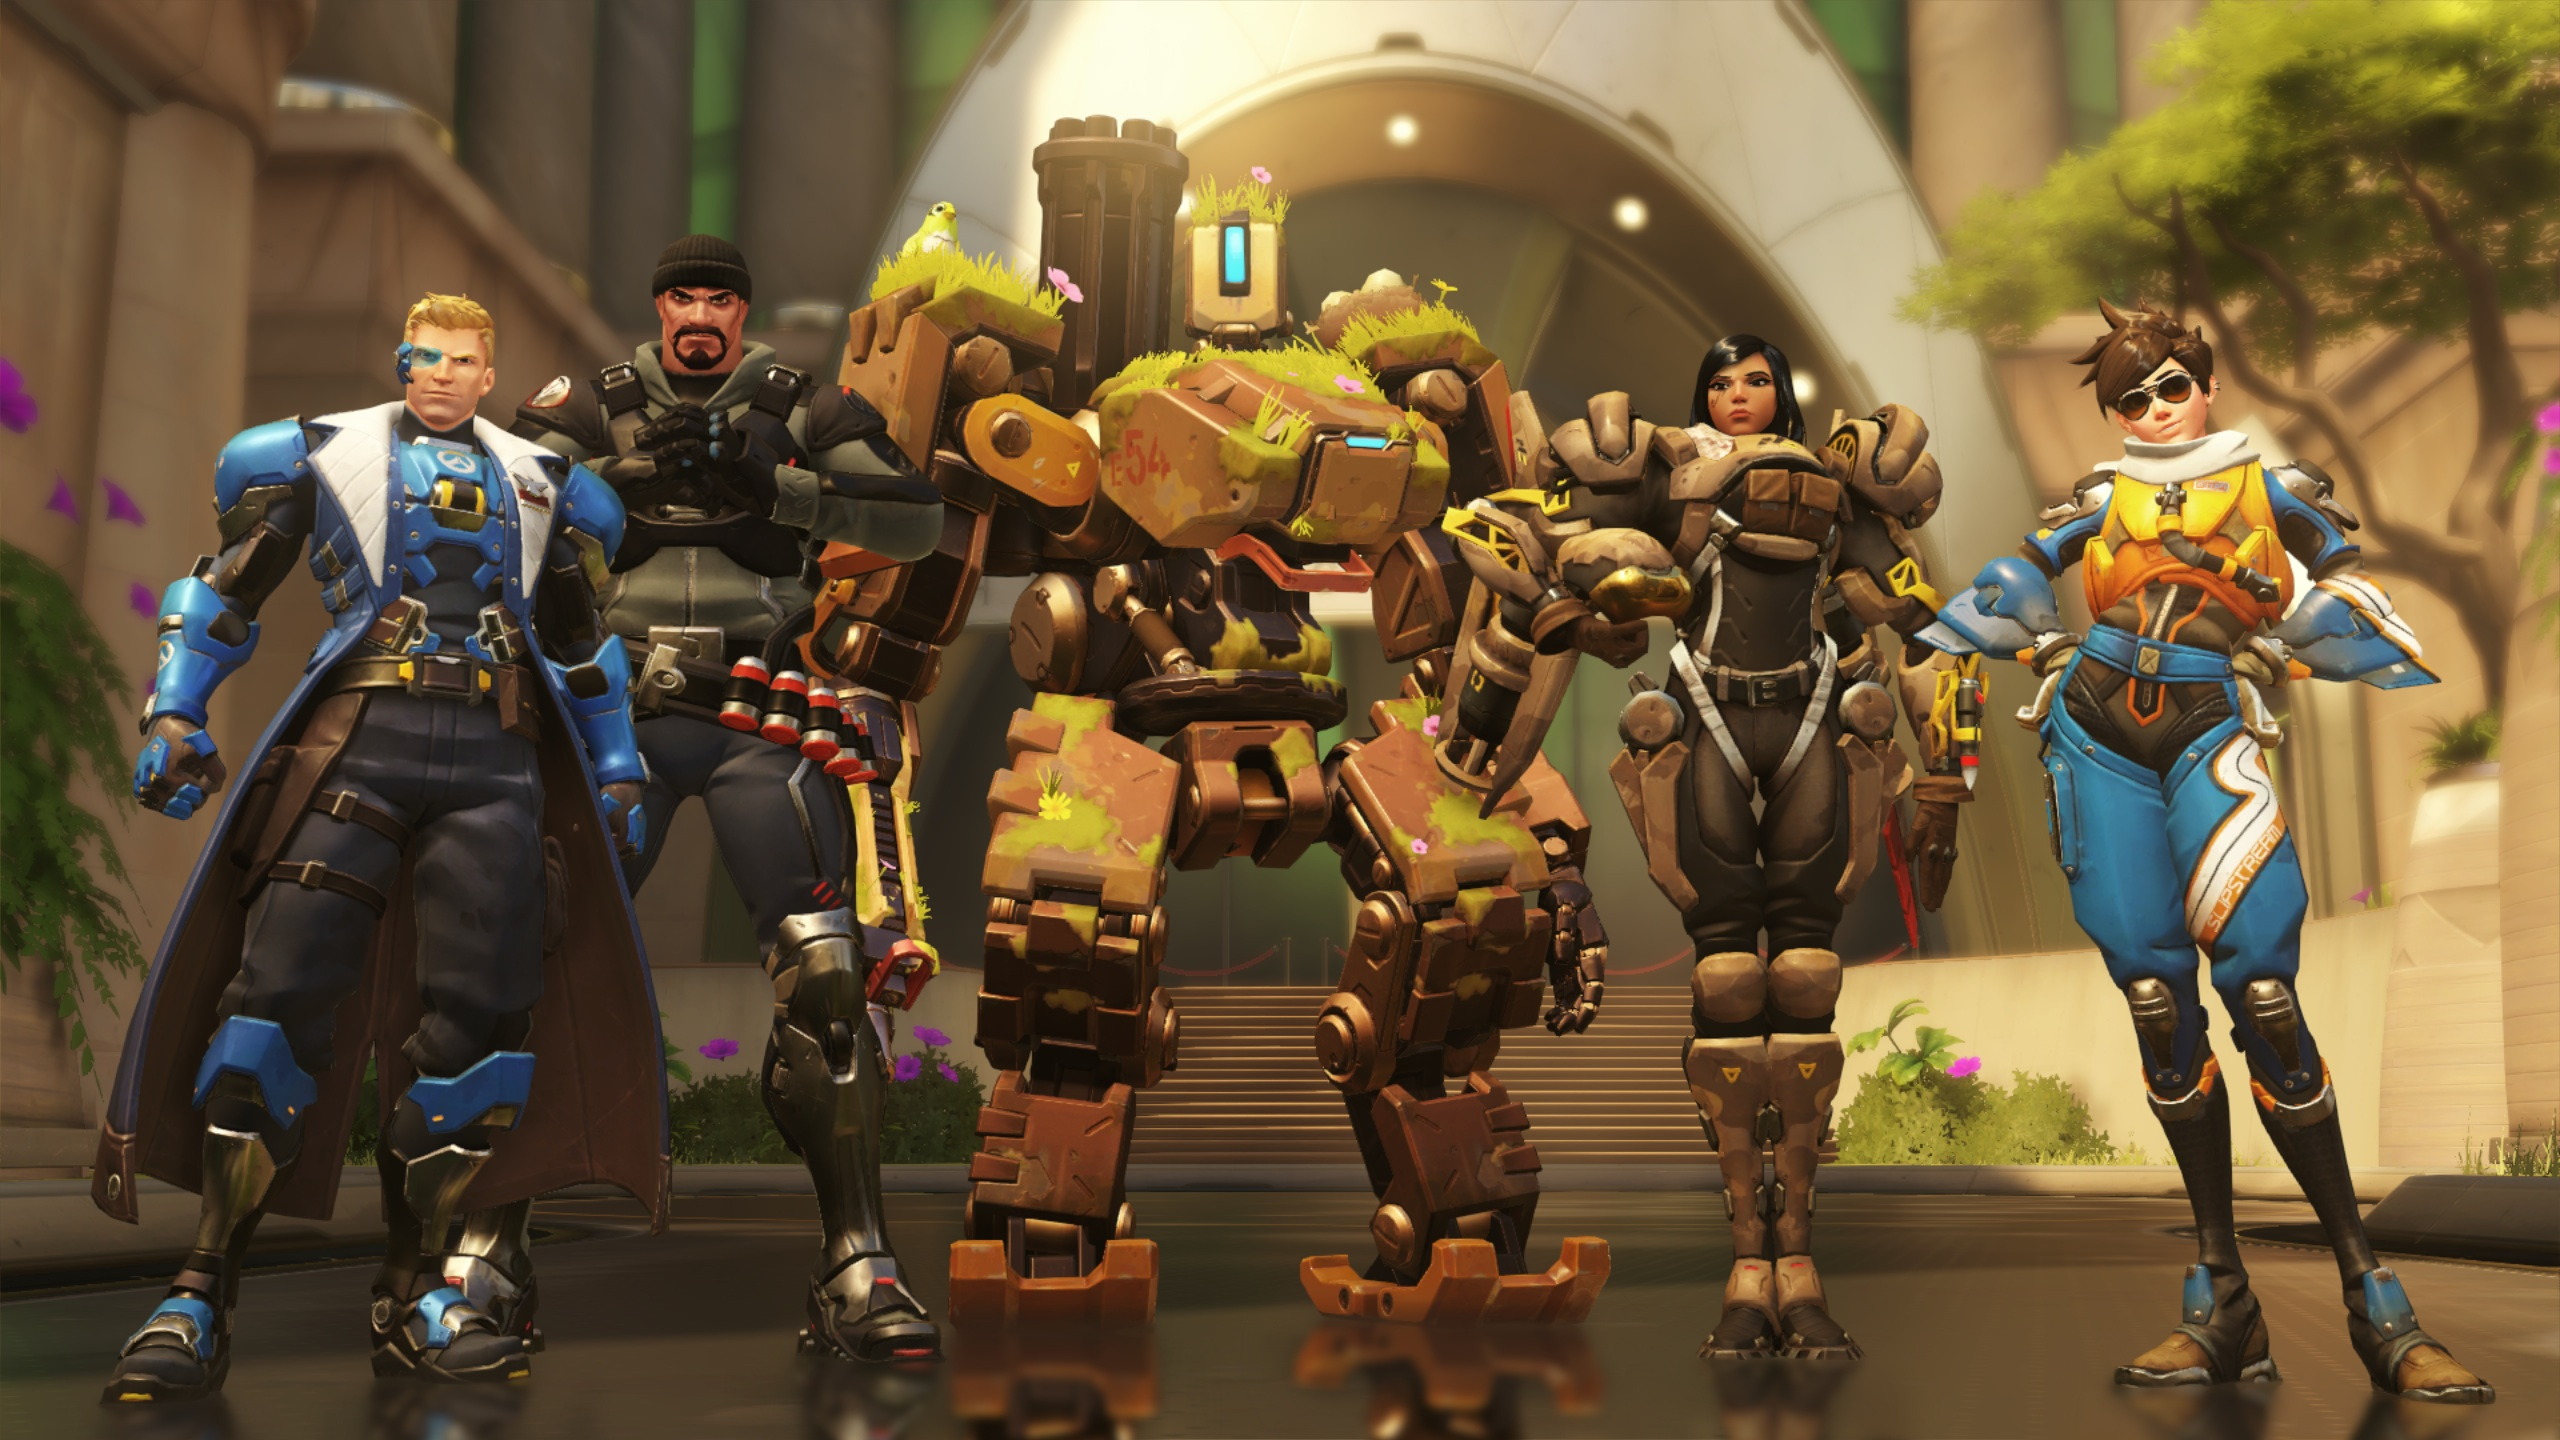 Bastion and friends.